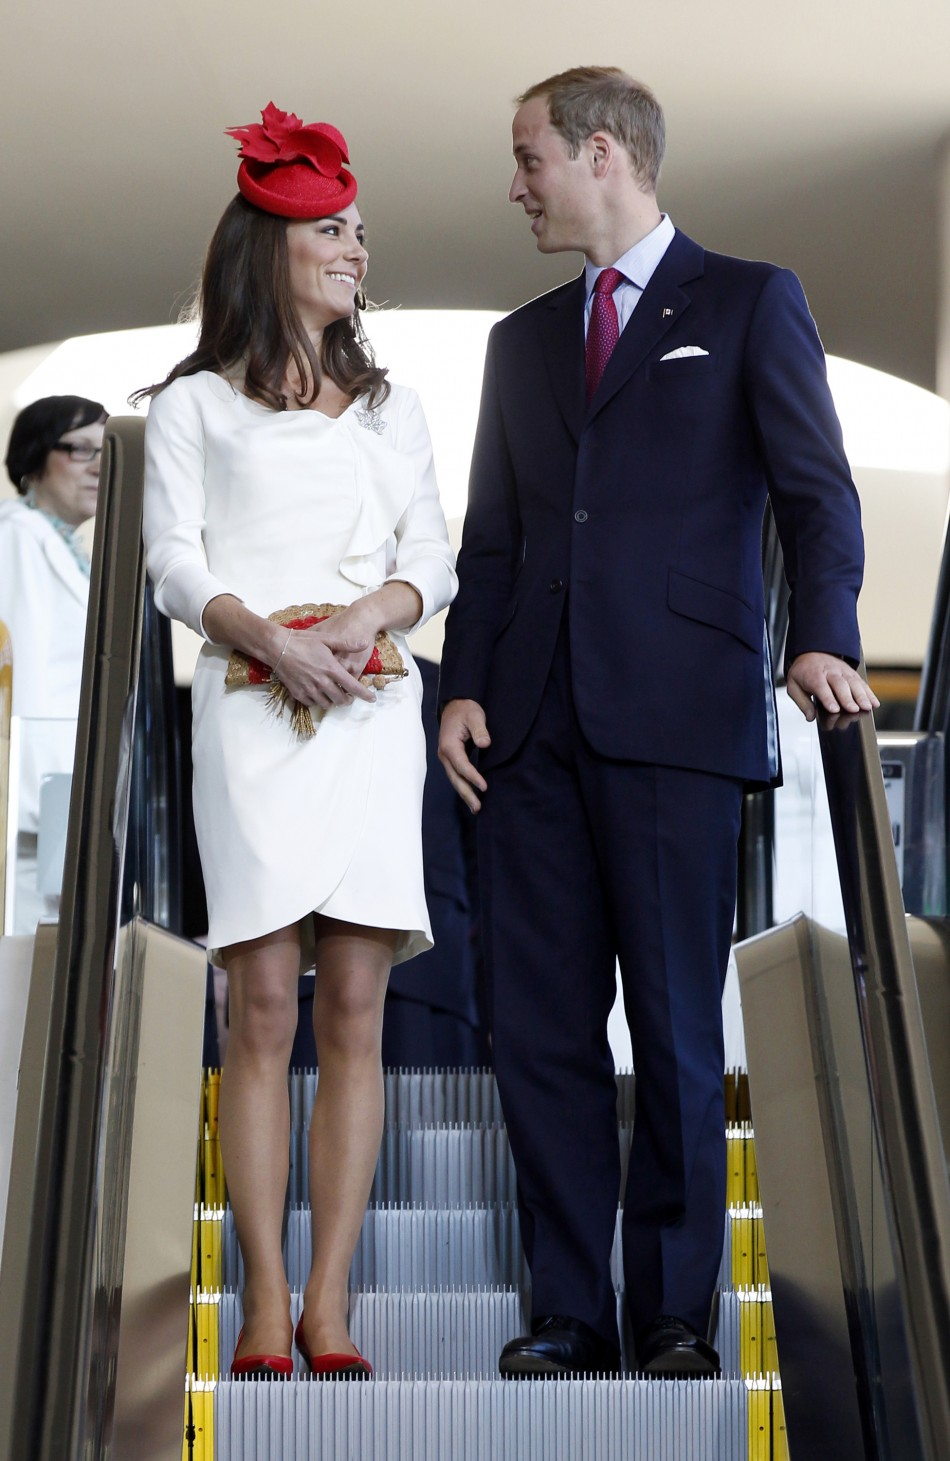 Britain's Prince William and his wife Catherine, the Duchess of Cambridge, arrive at a citizenship ceremony at the Canadian Museum of Civilization in Hull